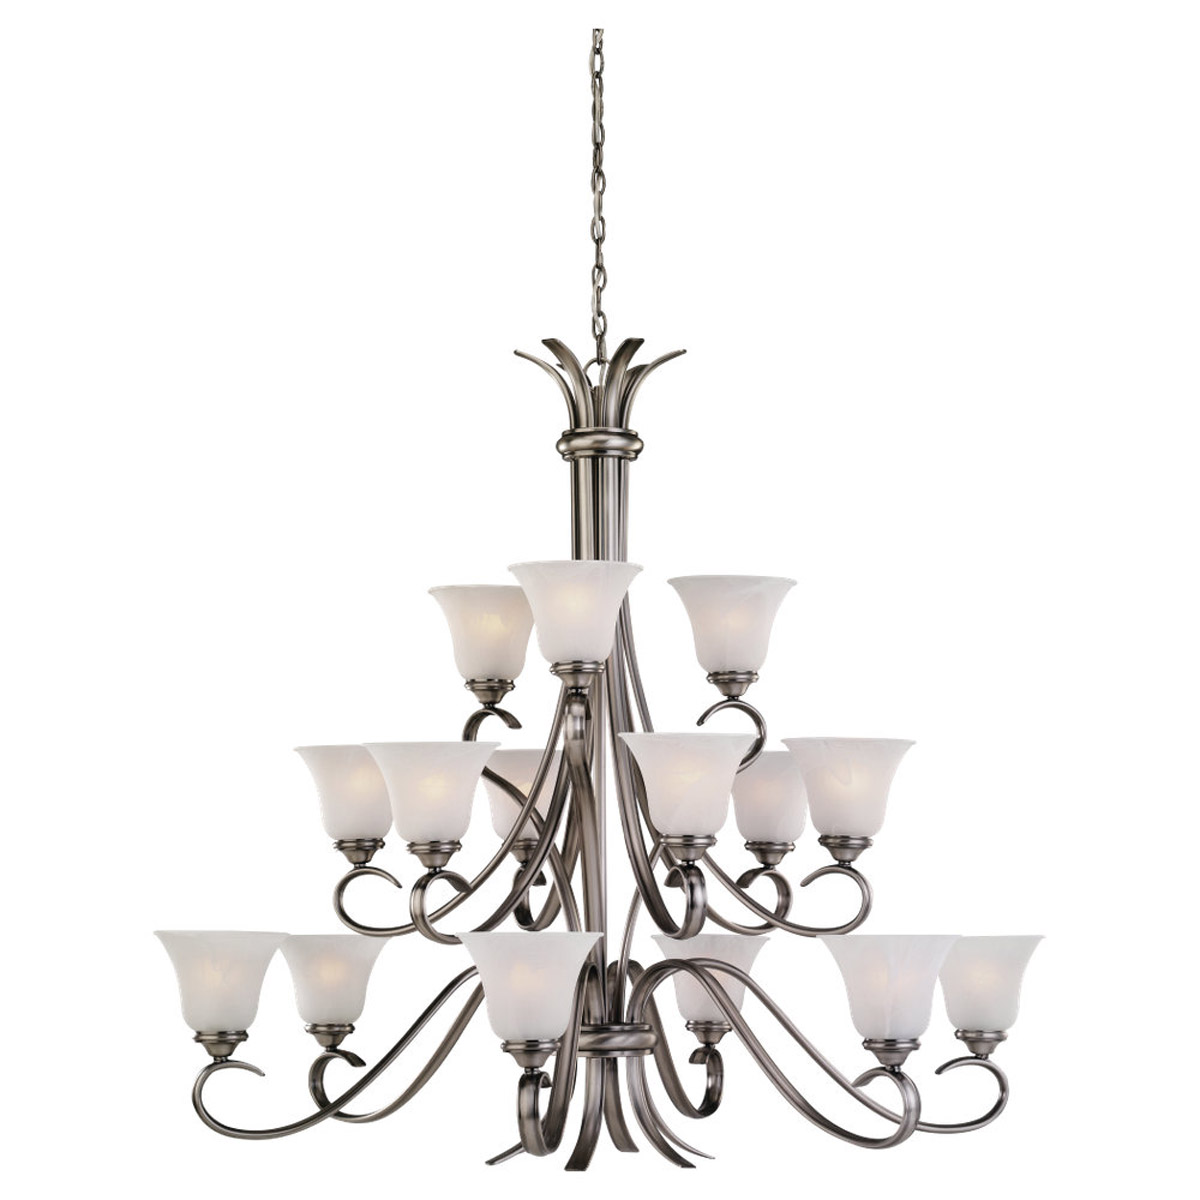 Sea Gull Lighting Rialto 15 Light Chandelier in Antique Brushed Nickel 31363-965 photo